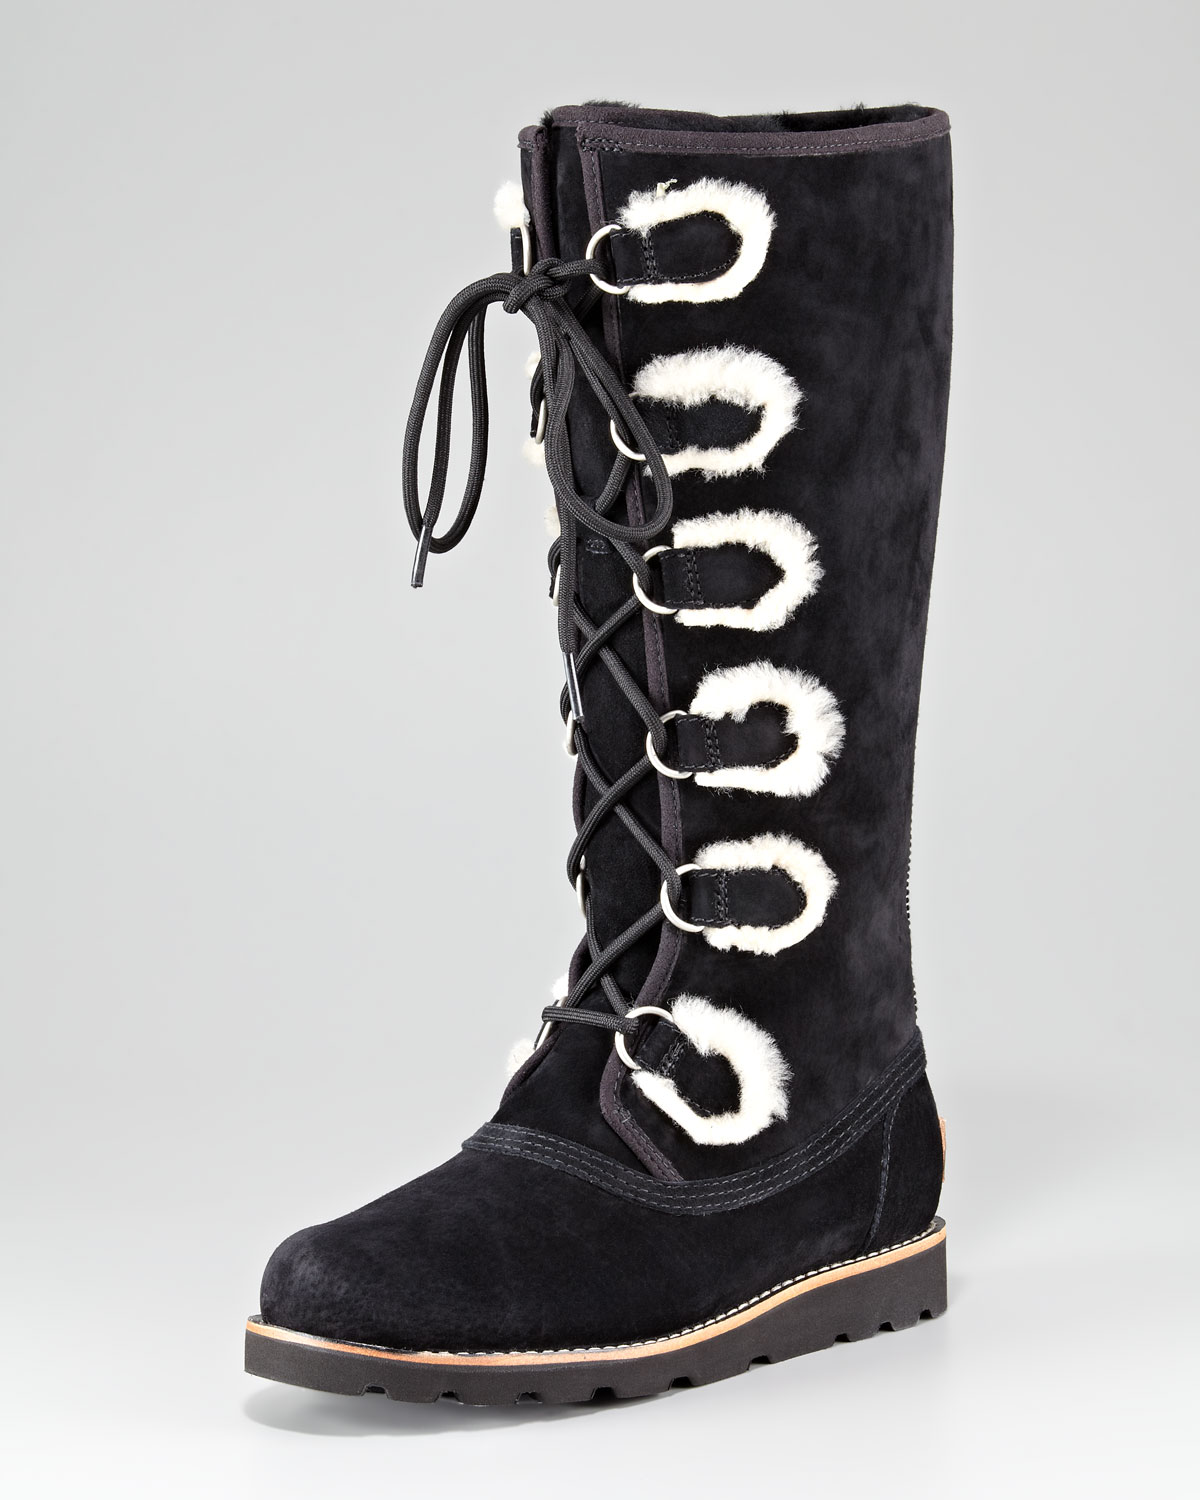 6d0133c399a release date ugg tall lace up boots ddf88 8b562